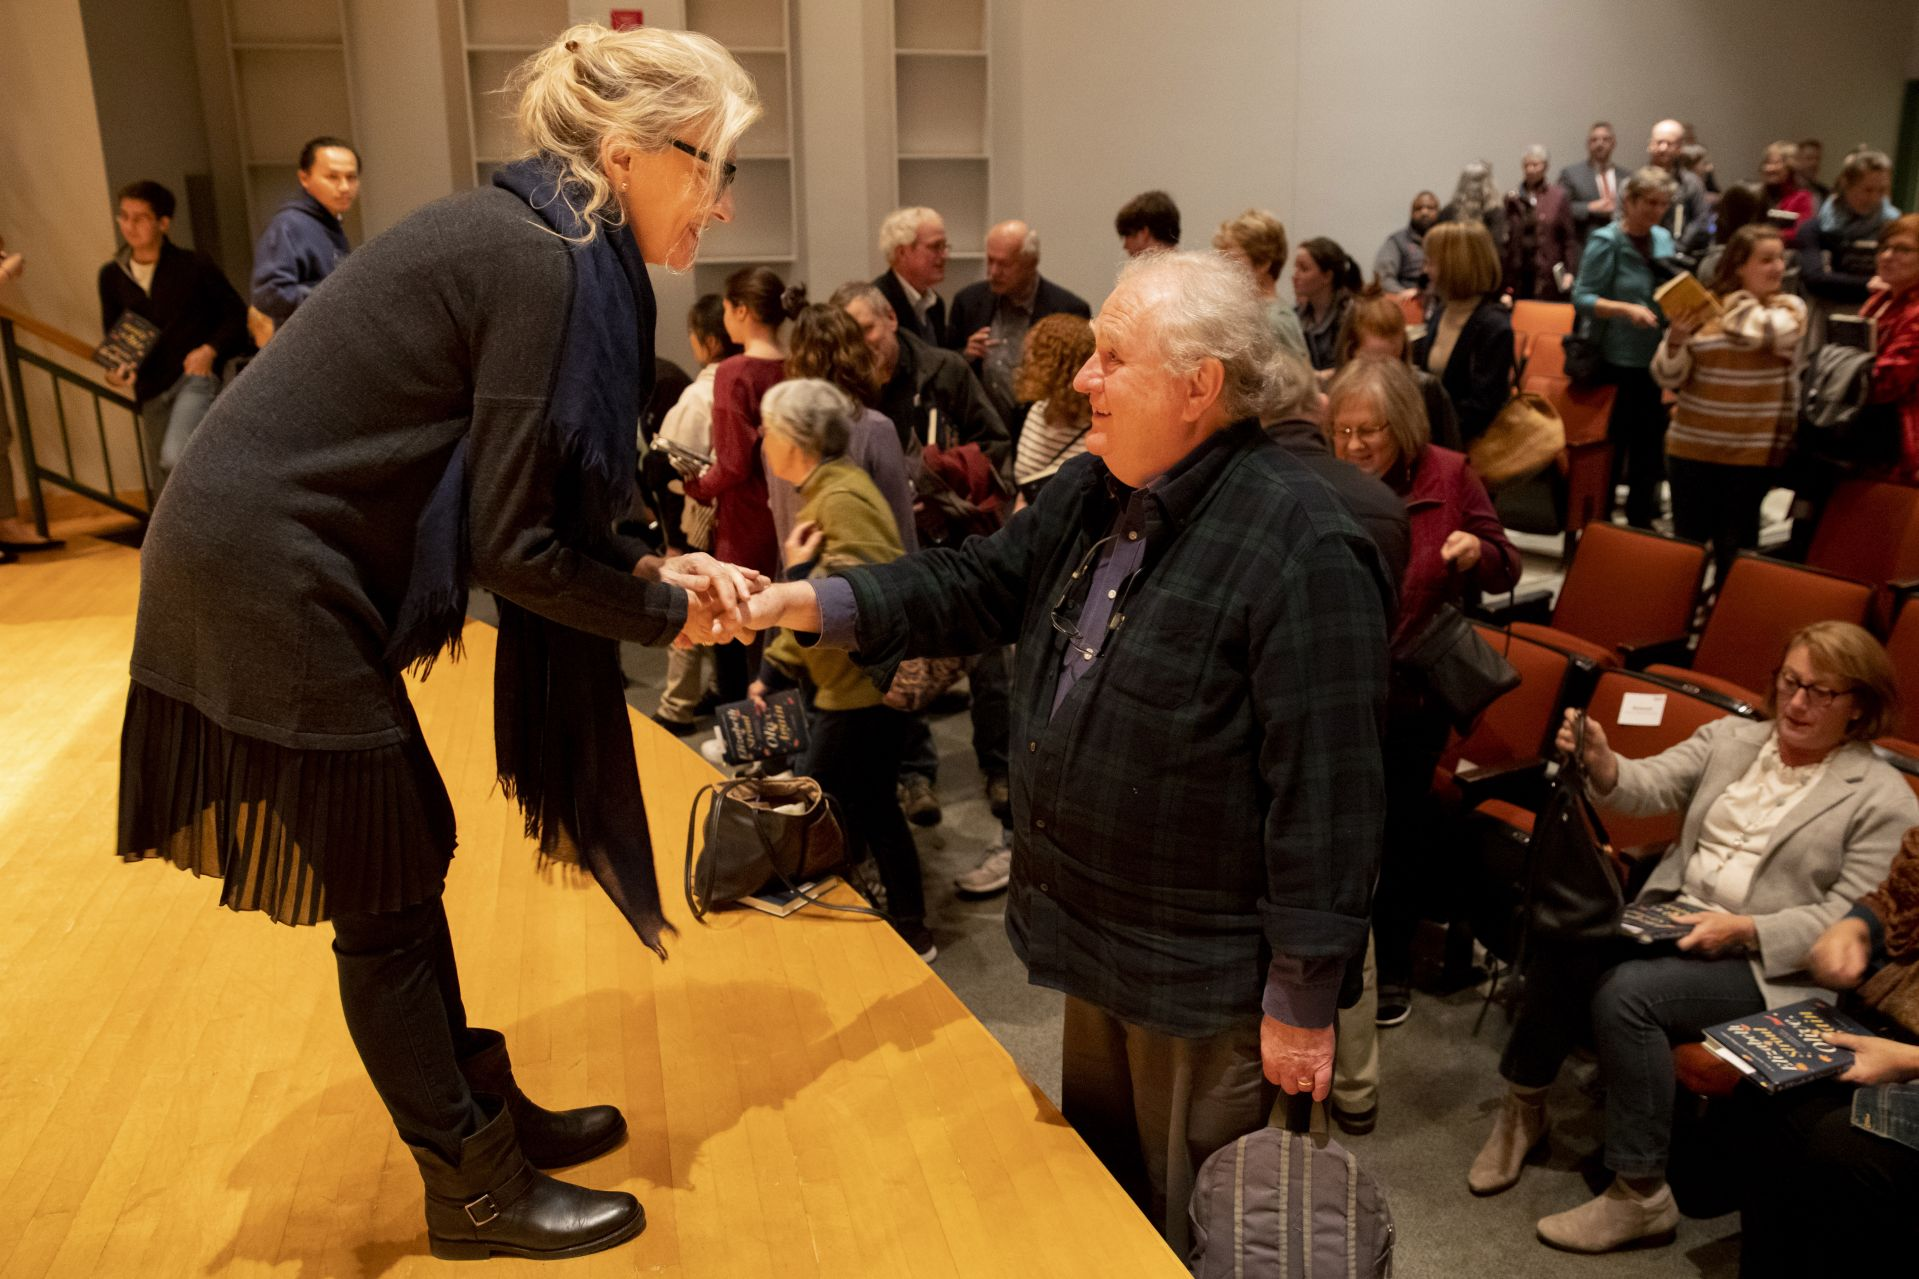 Elizabeth Strout '77 greets Dana Professor of Theater Martin Andrucki, one of her formative Bates professors, following her talk in the Olin Arts Center Concert Hall on Oct. 21. (Phyllis Graber Jensen/Bates College)